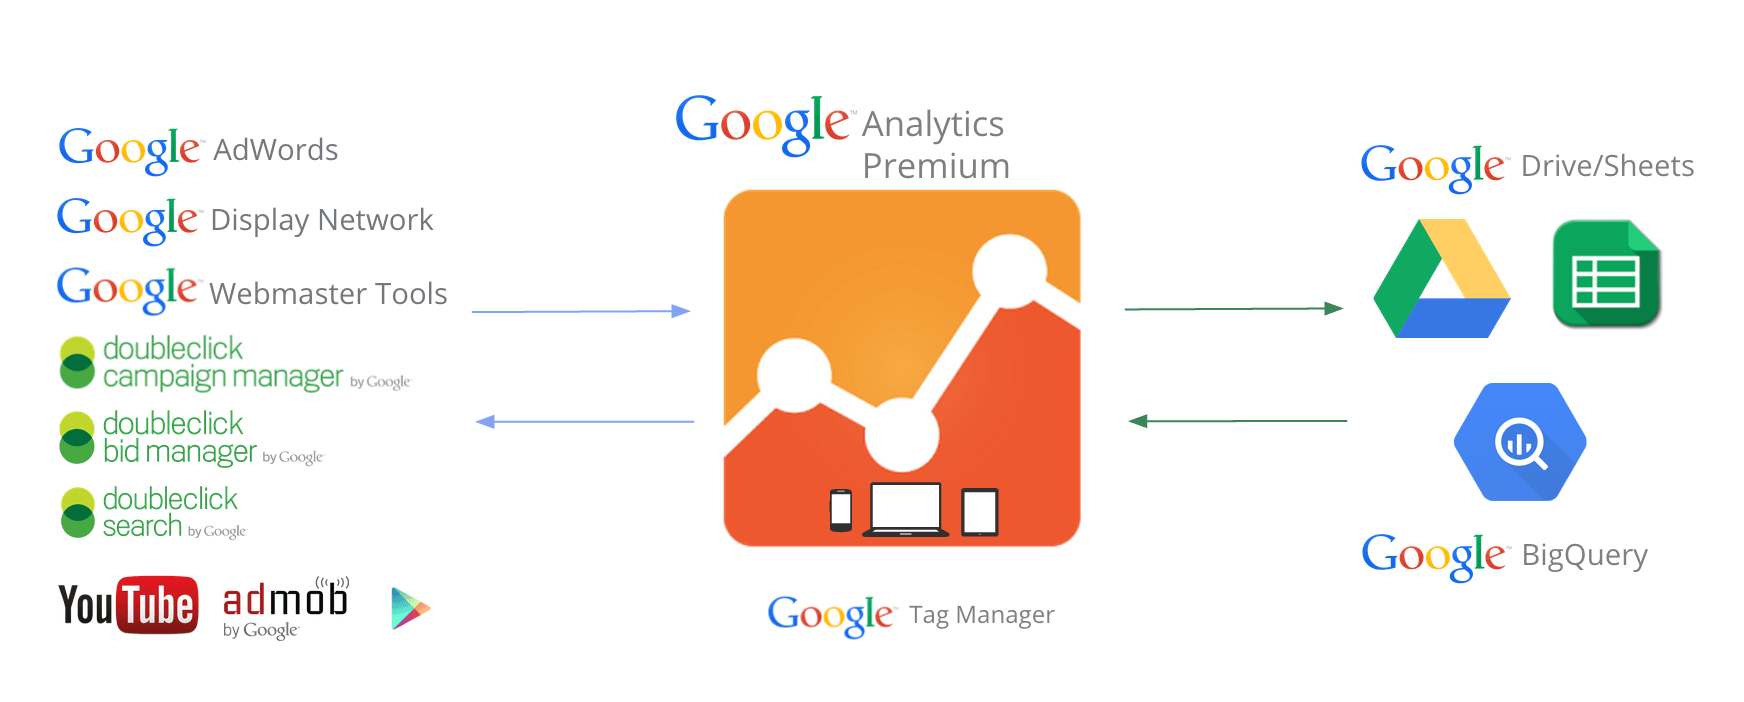 Google_Analytics_Premium_Integrations